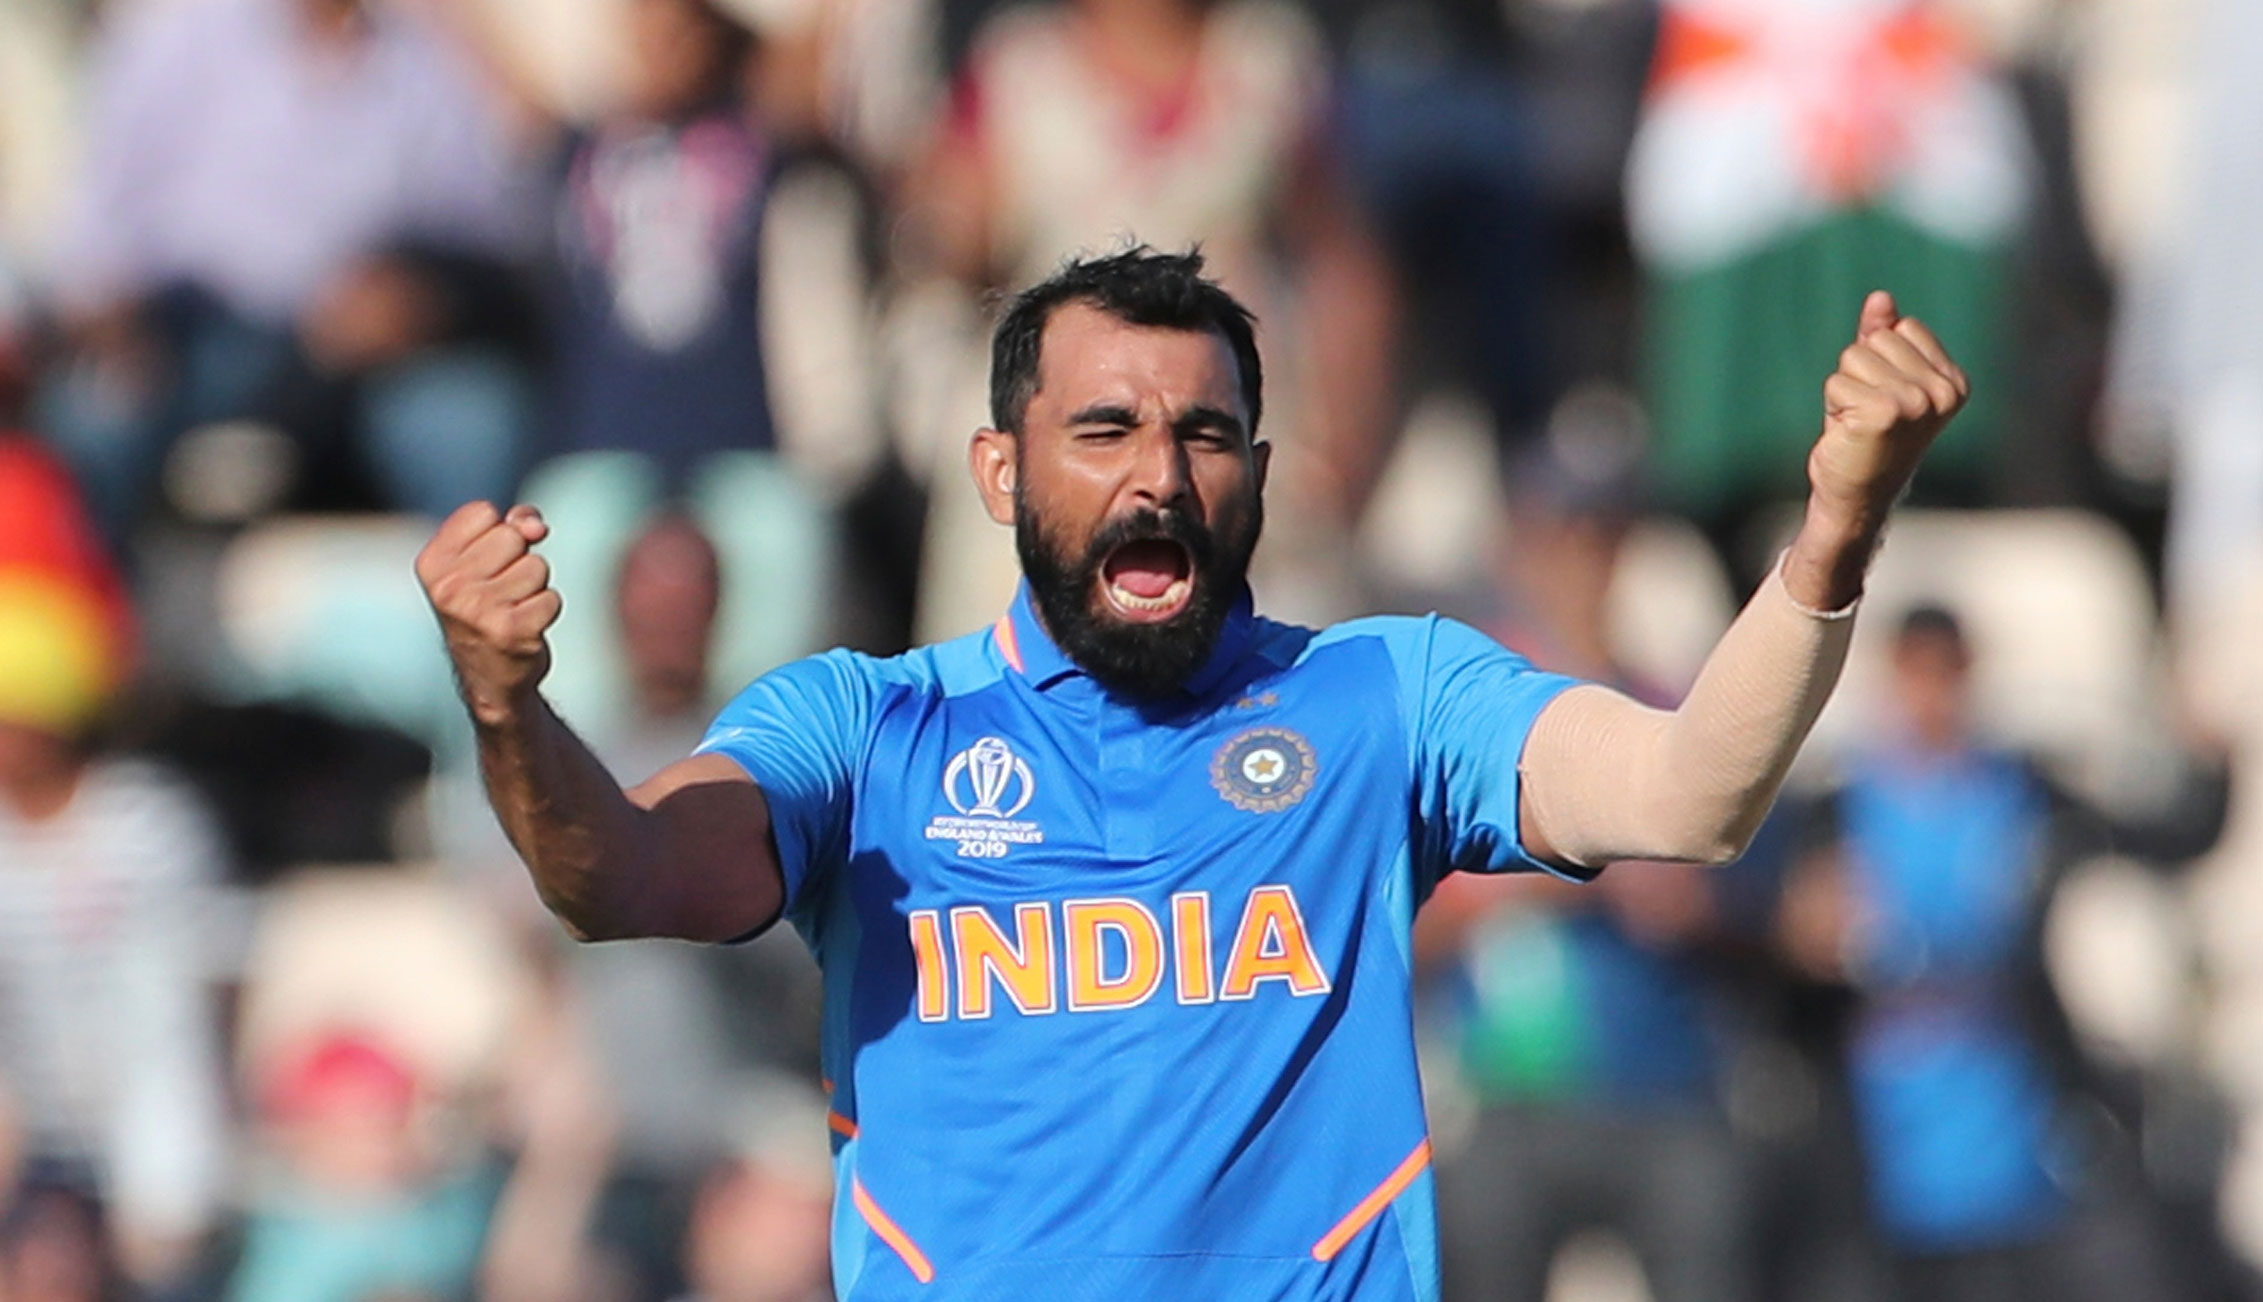 Mohammed Shami celebrates his hat-trick after dismissing Afghanistan's Mujeeb Ur Rahman during the ICC Cricket World Cup match between India and Afghanistan at the Hampshire Bowl in Southampton, on June 22, 2019.